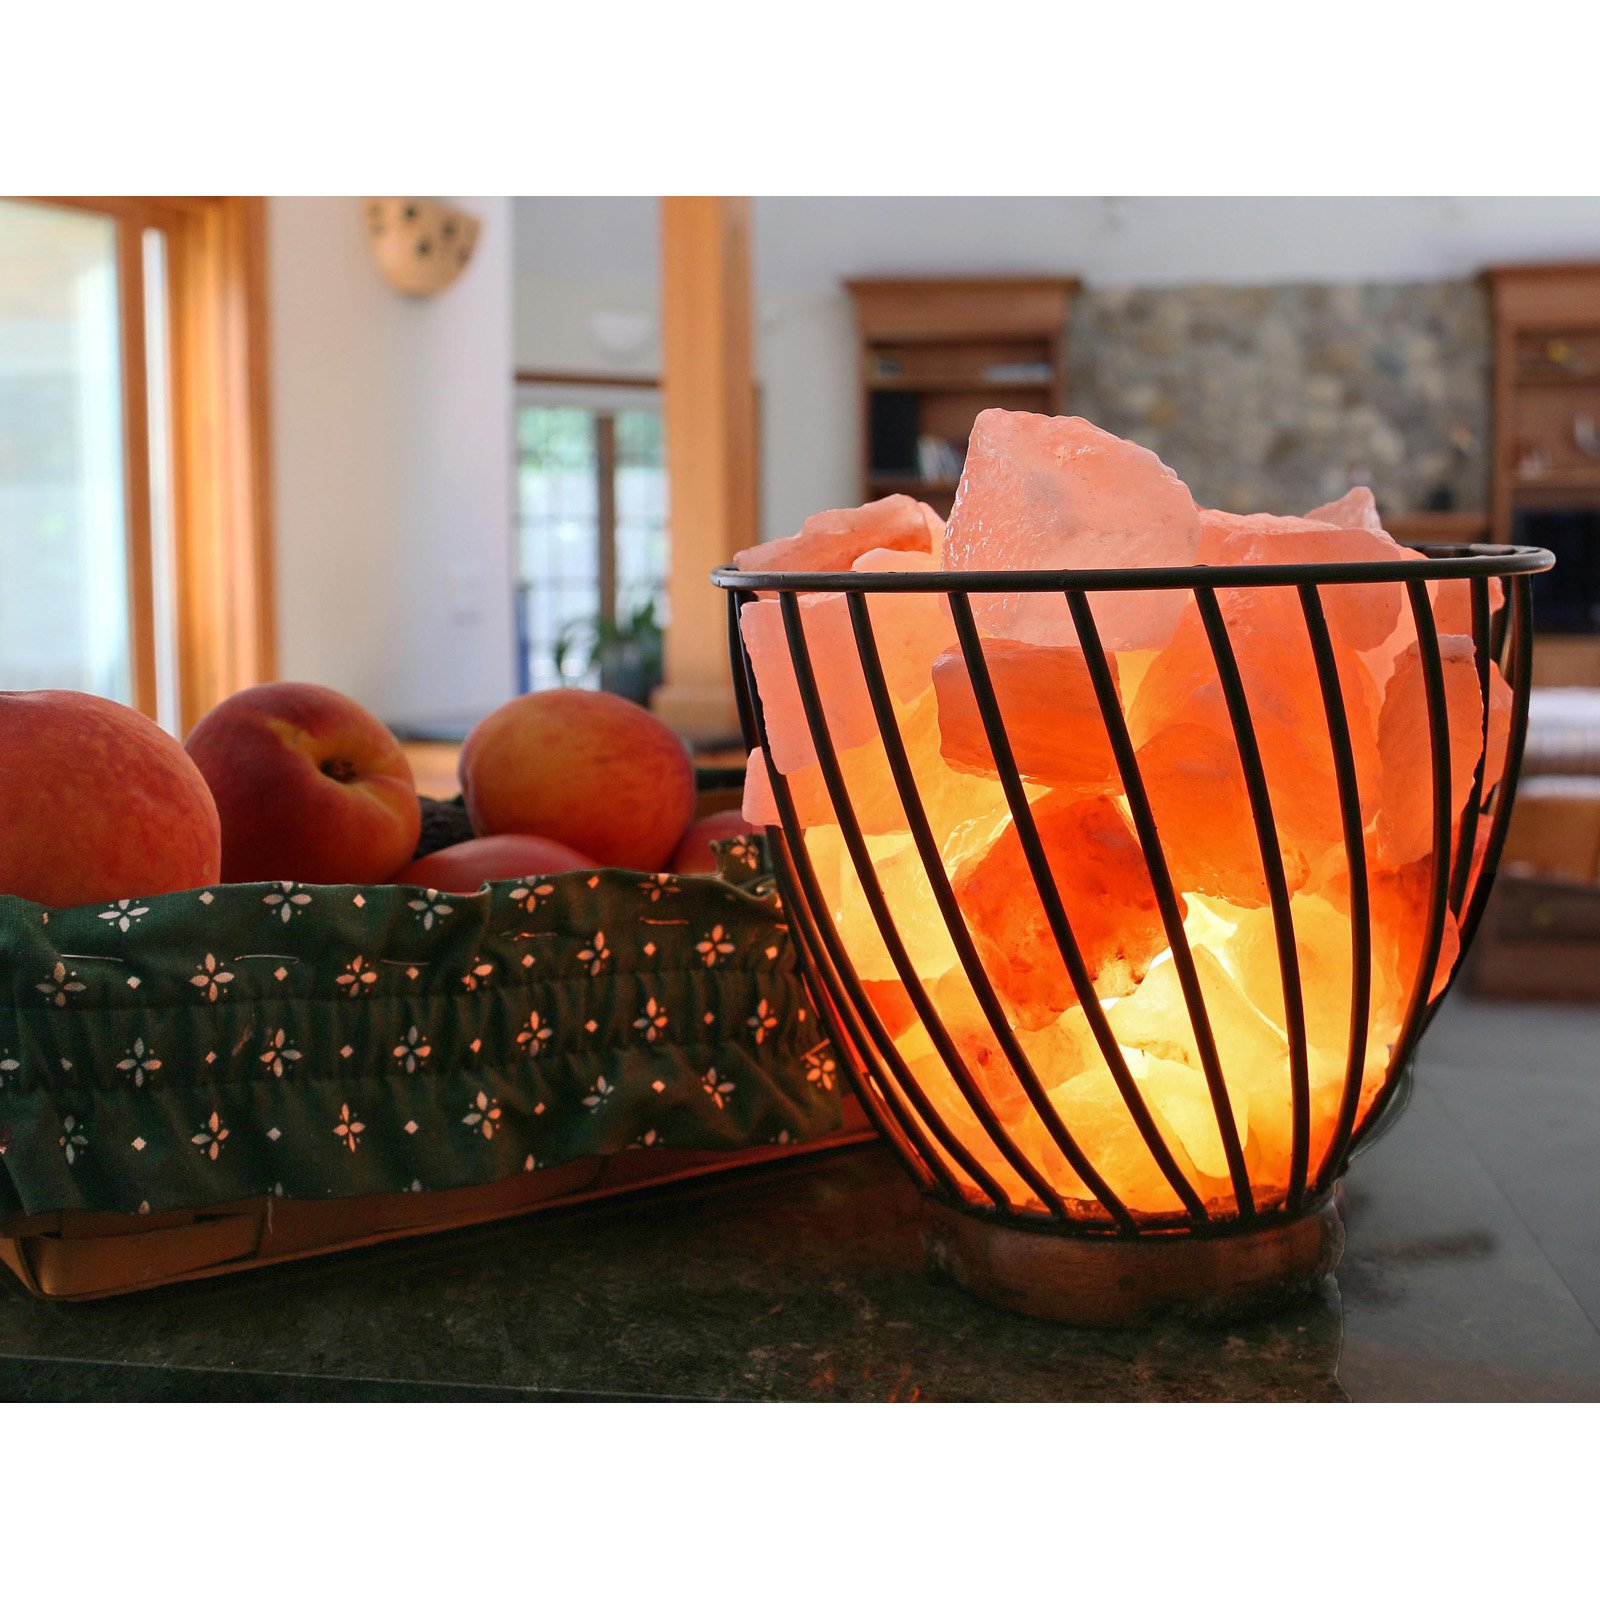 Accentuations by Manhattan Comfort Himalayan Wired Basket 3.0 Salt Lamp with Dimmer